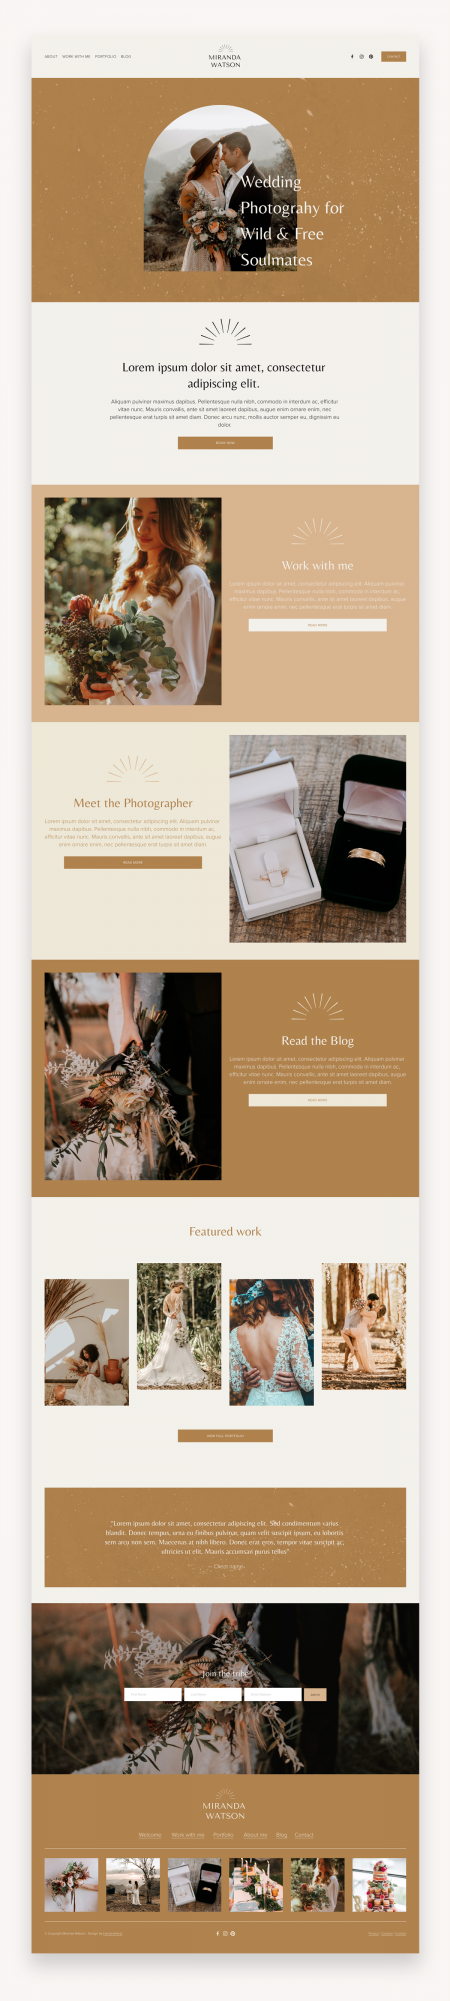 Miranda Photography Squarespace Template